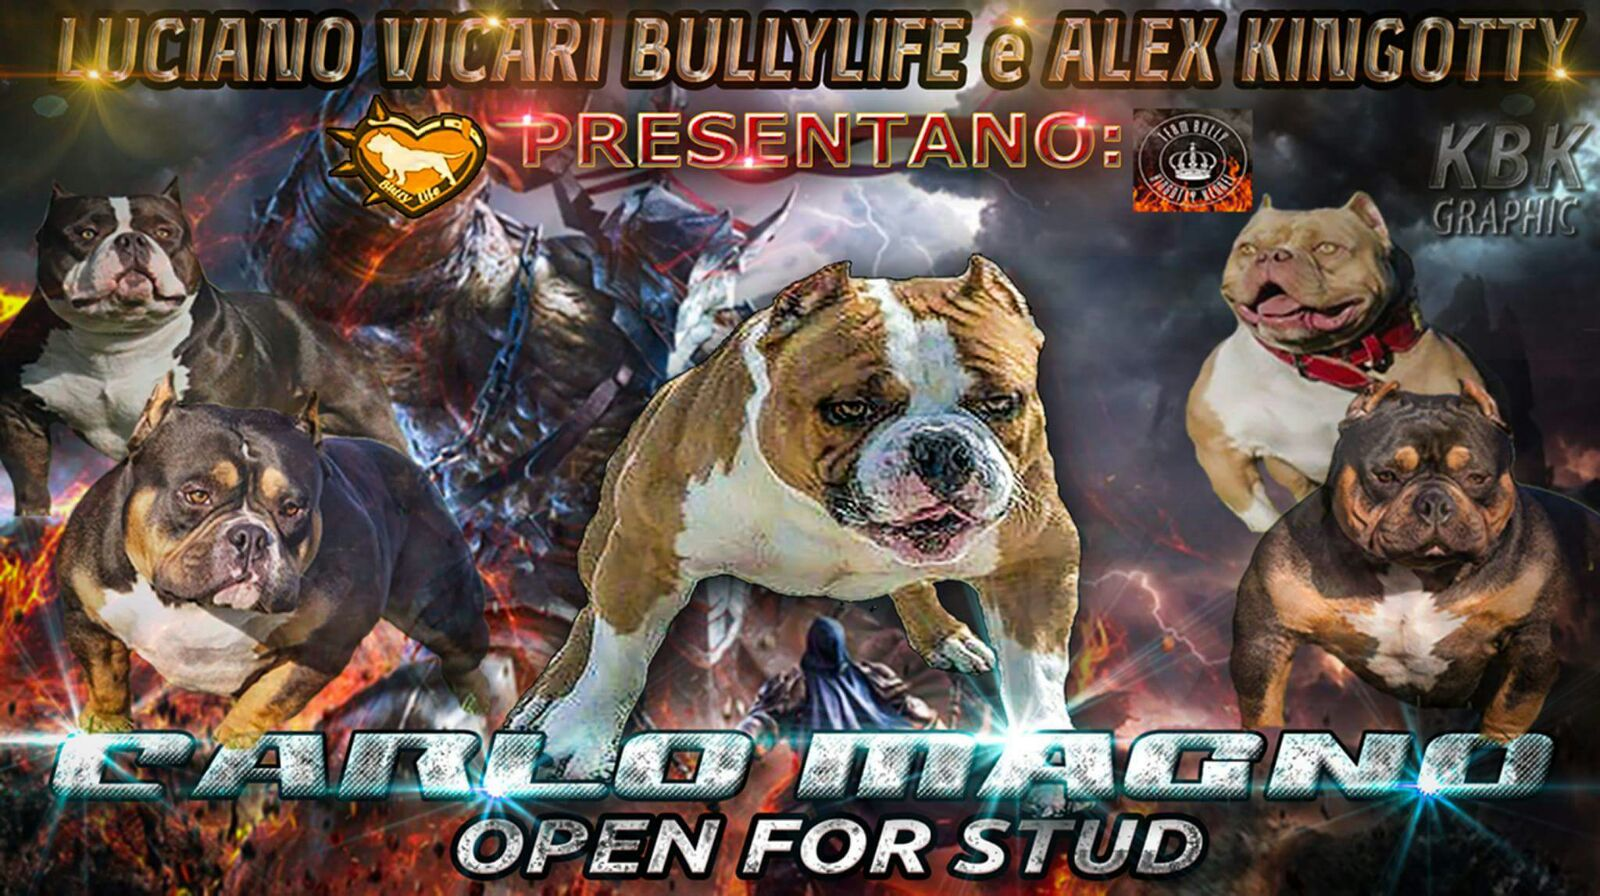 Carlo Magno american bully open for stud